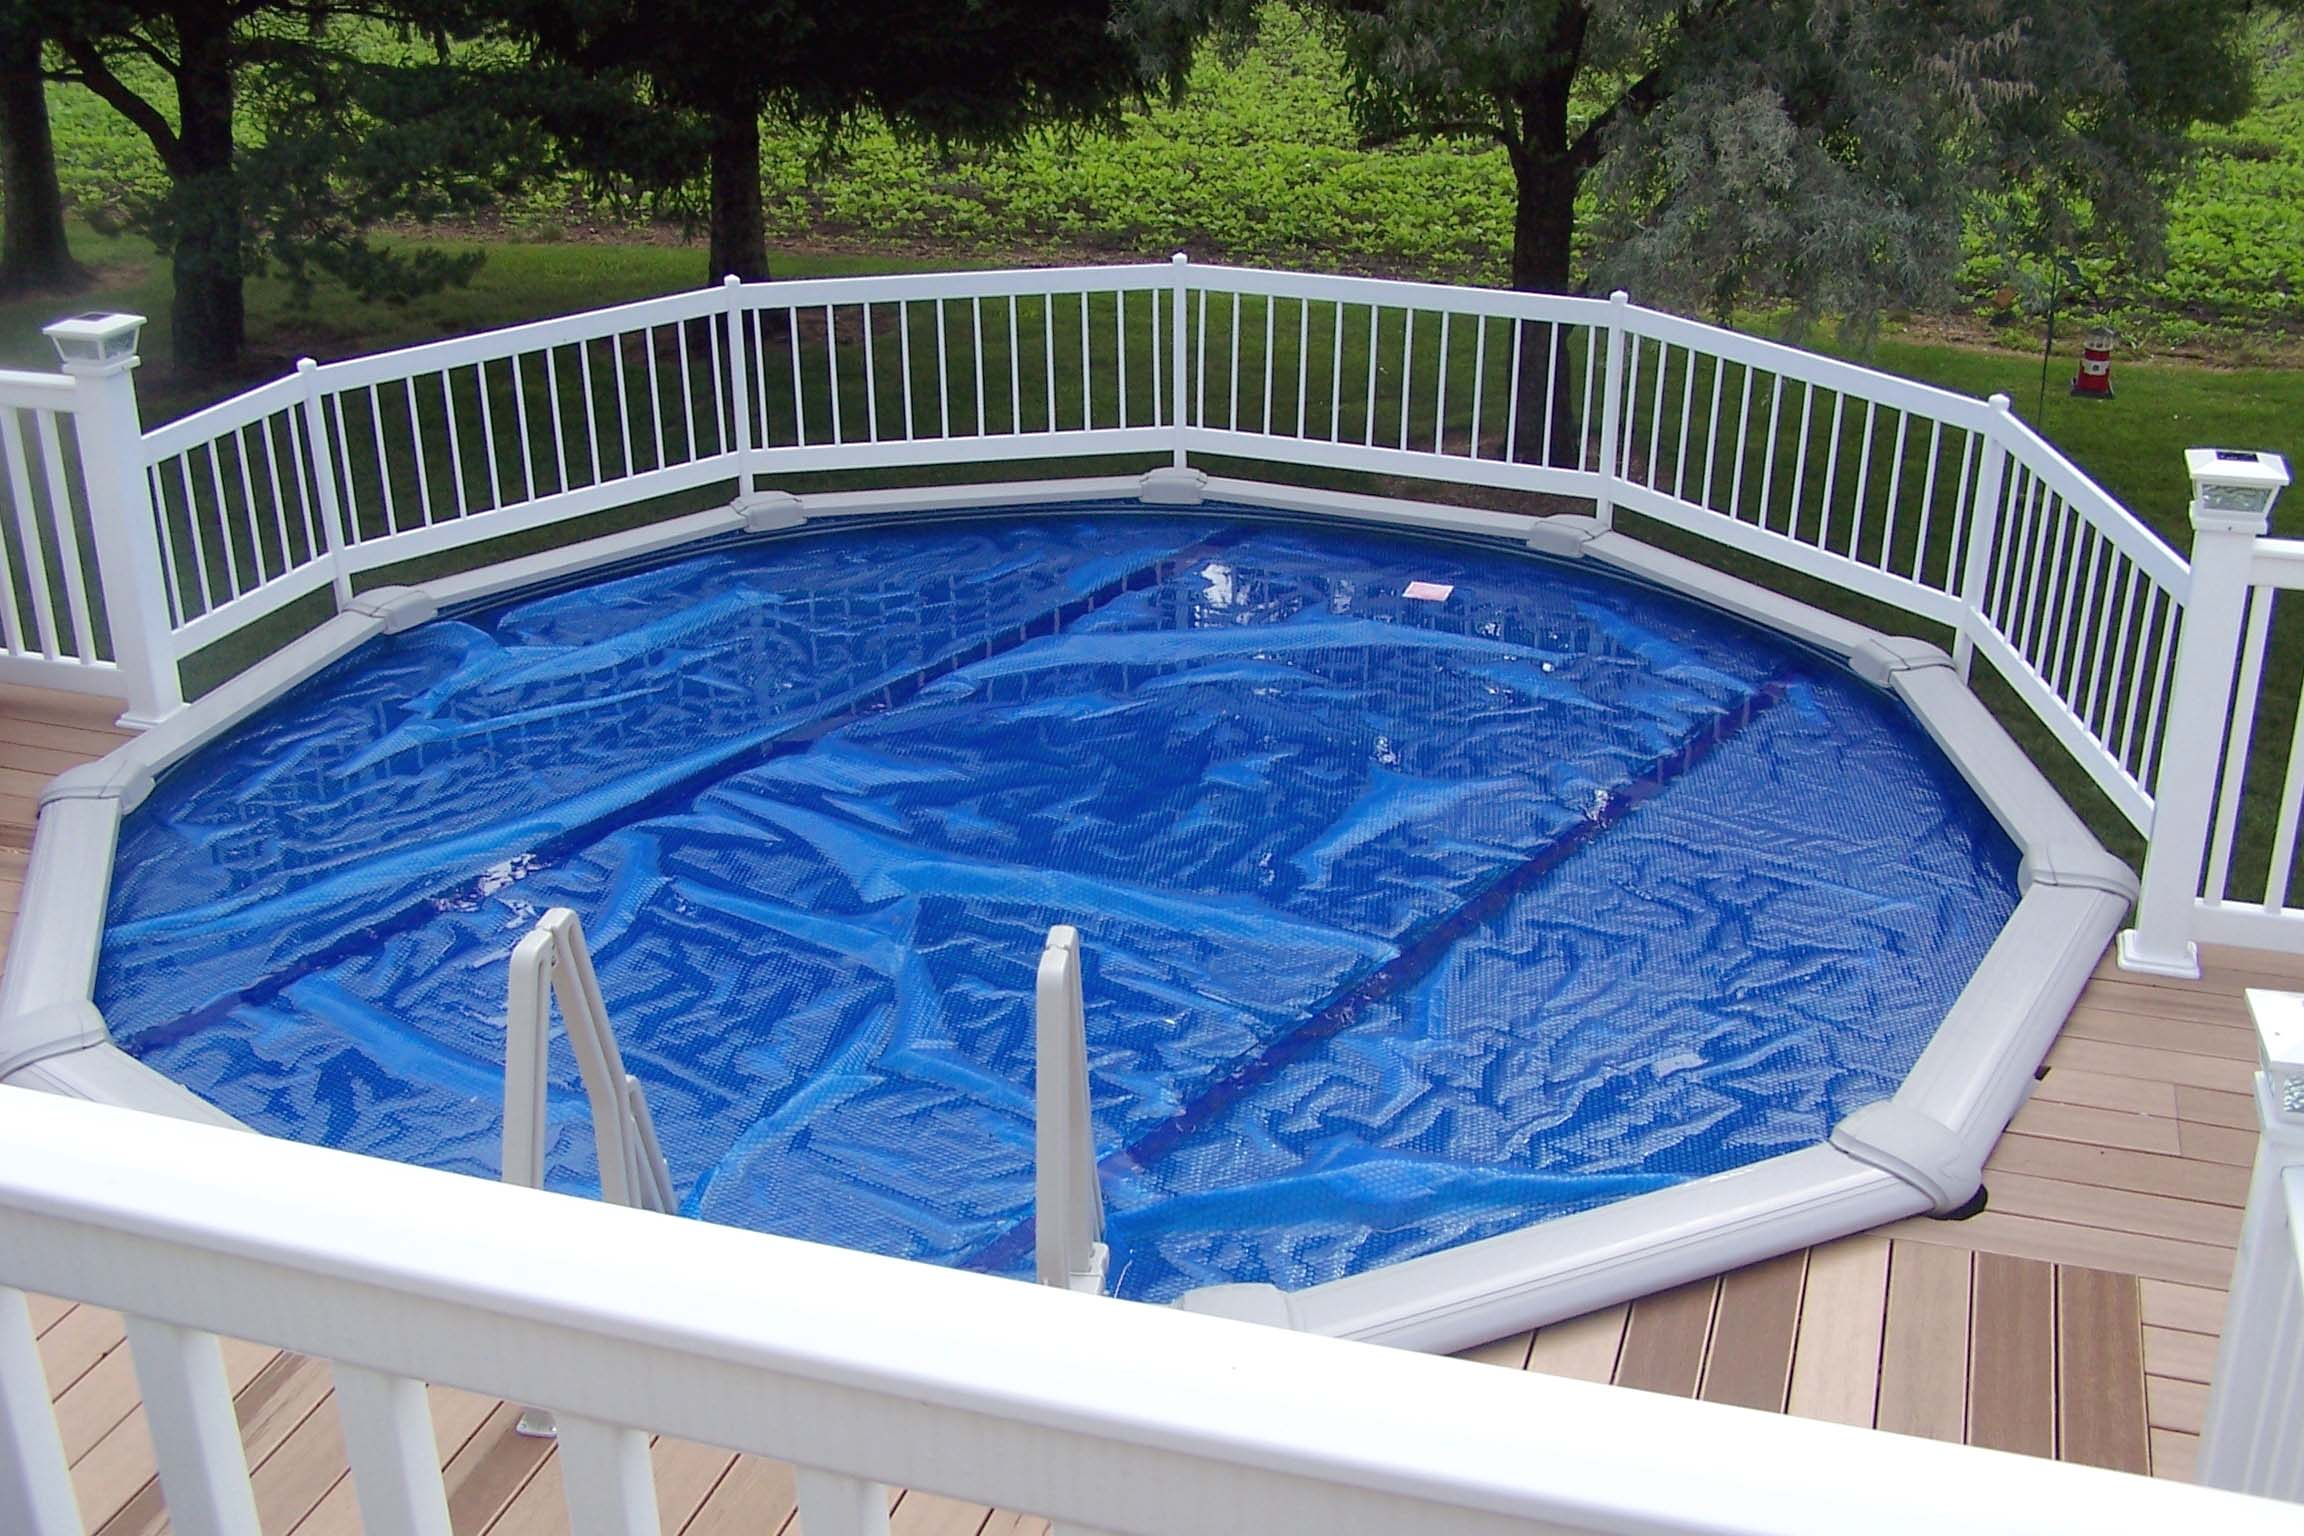 Economy Resin Pool Fence System Vinyl Works Canada